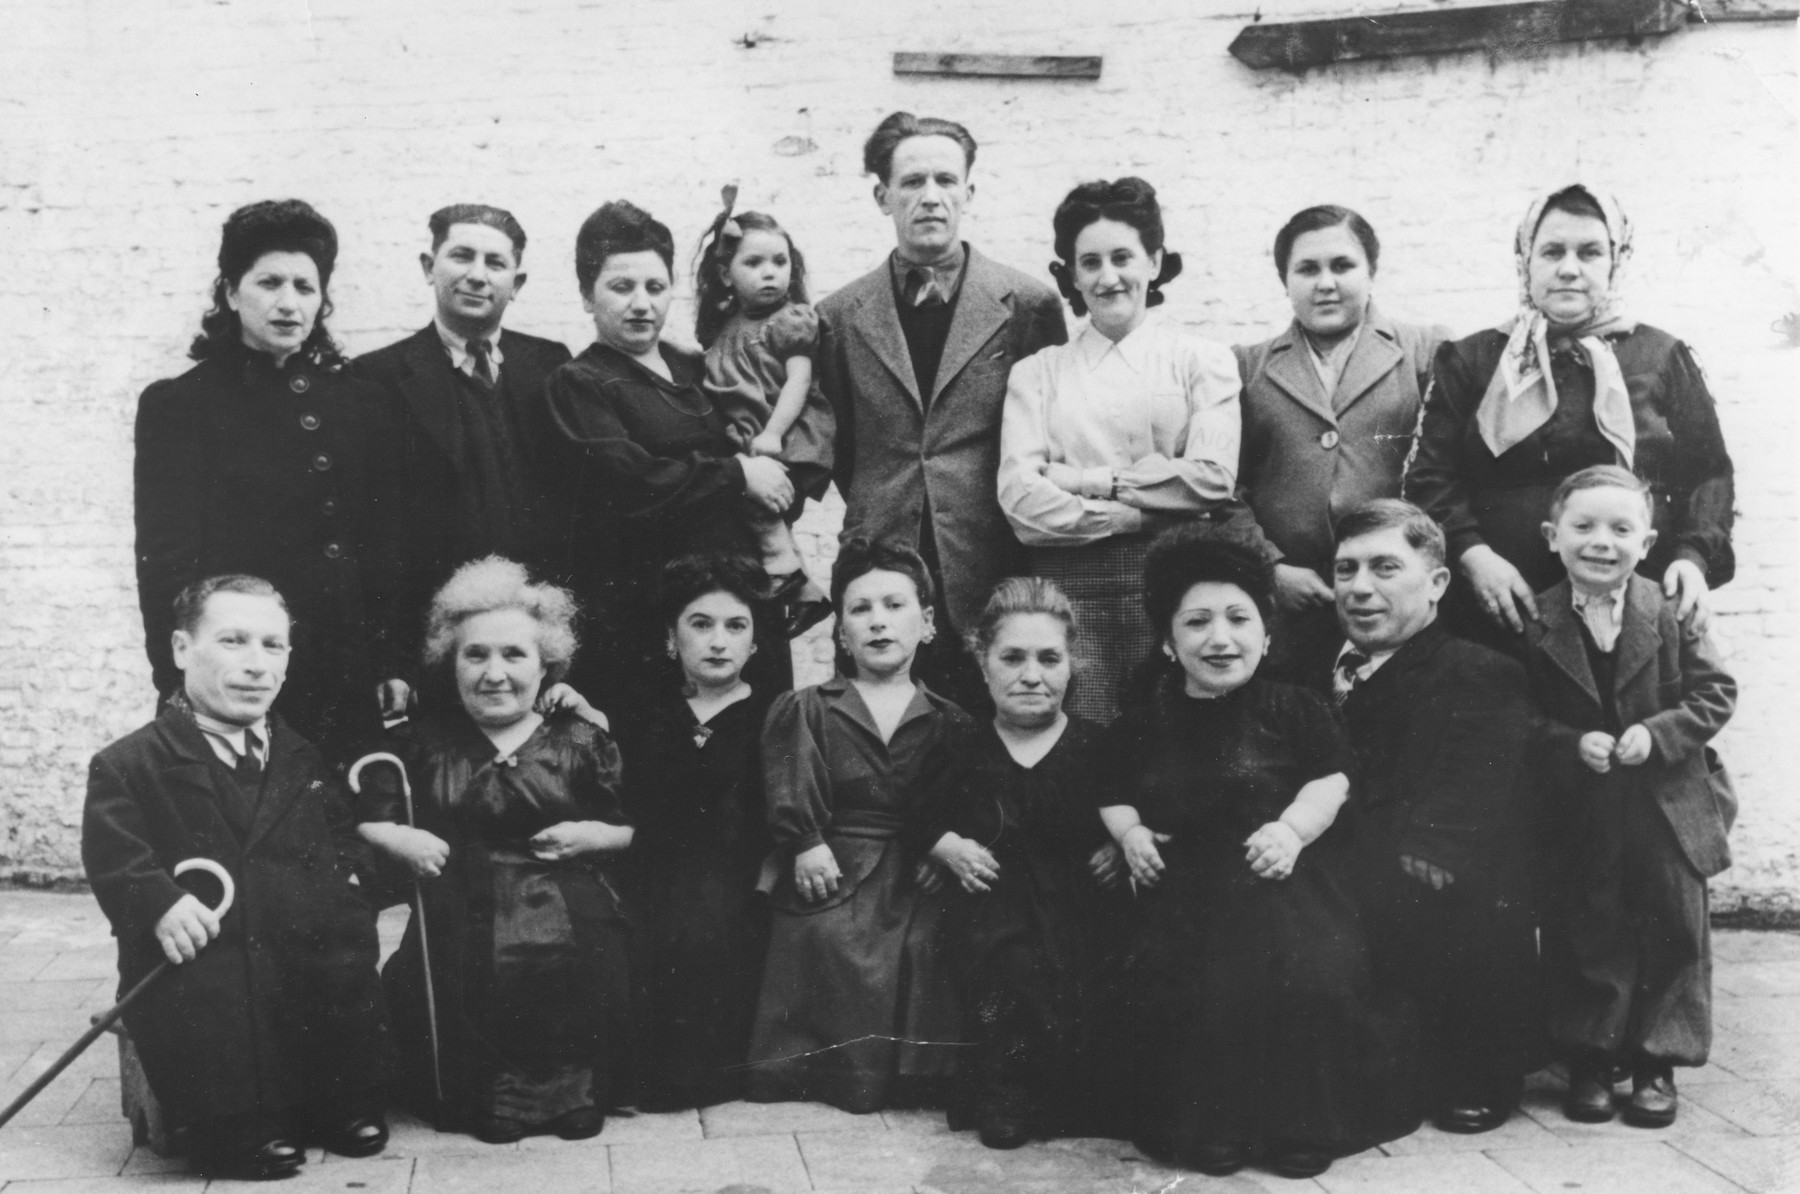 Group portrait of the Ovici family, a family of Jewish dwarf entertainers who survived Auschwitz.  Seated from left to right are Micki, Francesca, Perla, Elizabeth, Rozika, Frieda, Avram and Shimshon.  Standing are Sarah, Azriel, his wife Leah holding their daughter Batia, Moshe Moskowitz (who is Elizabeth's husband), an unknown woman, Avram's daughter Batia and her mother Dora.